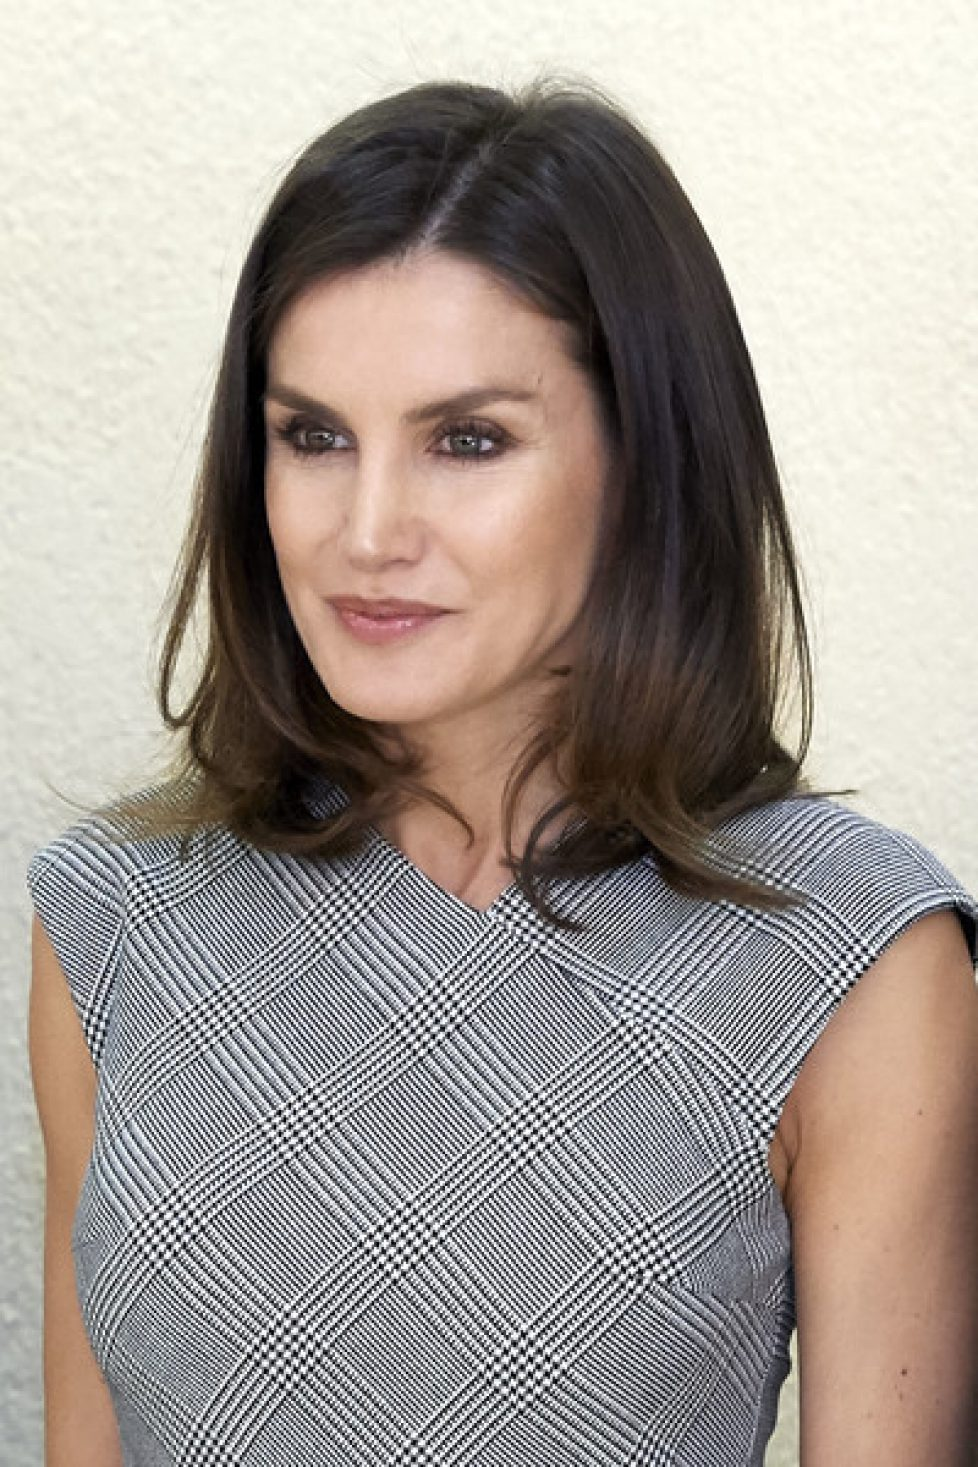 Queen+Letizia+Attends+Rare+Diseases+World+FBYAYYoLDrBl